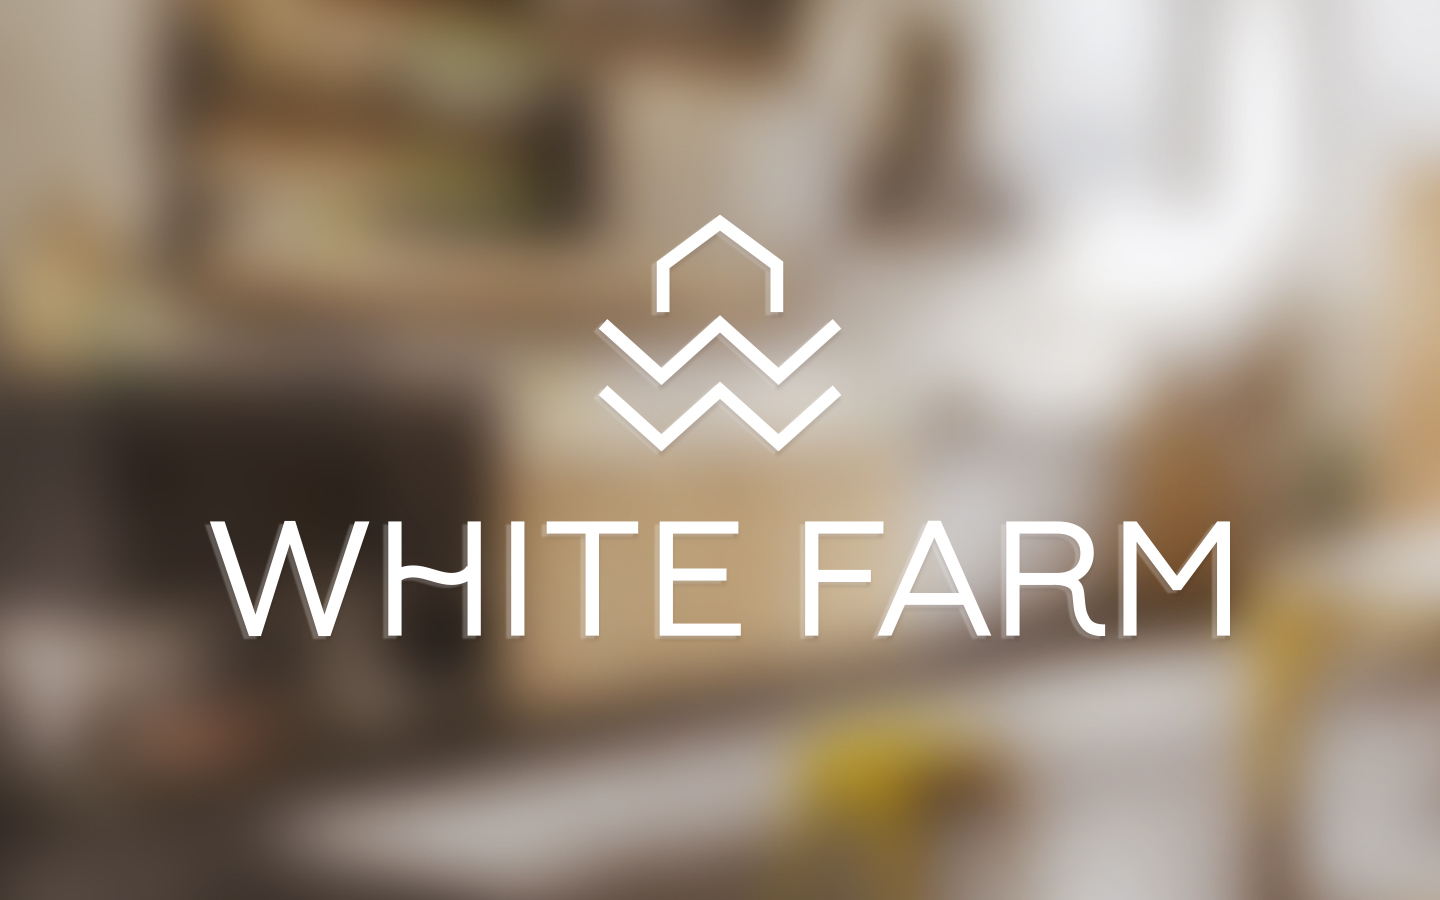 White Farm Visual Identity